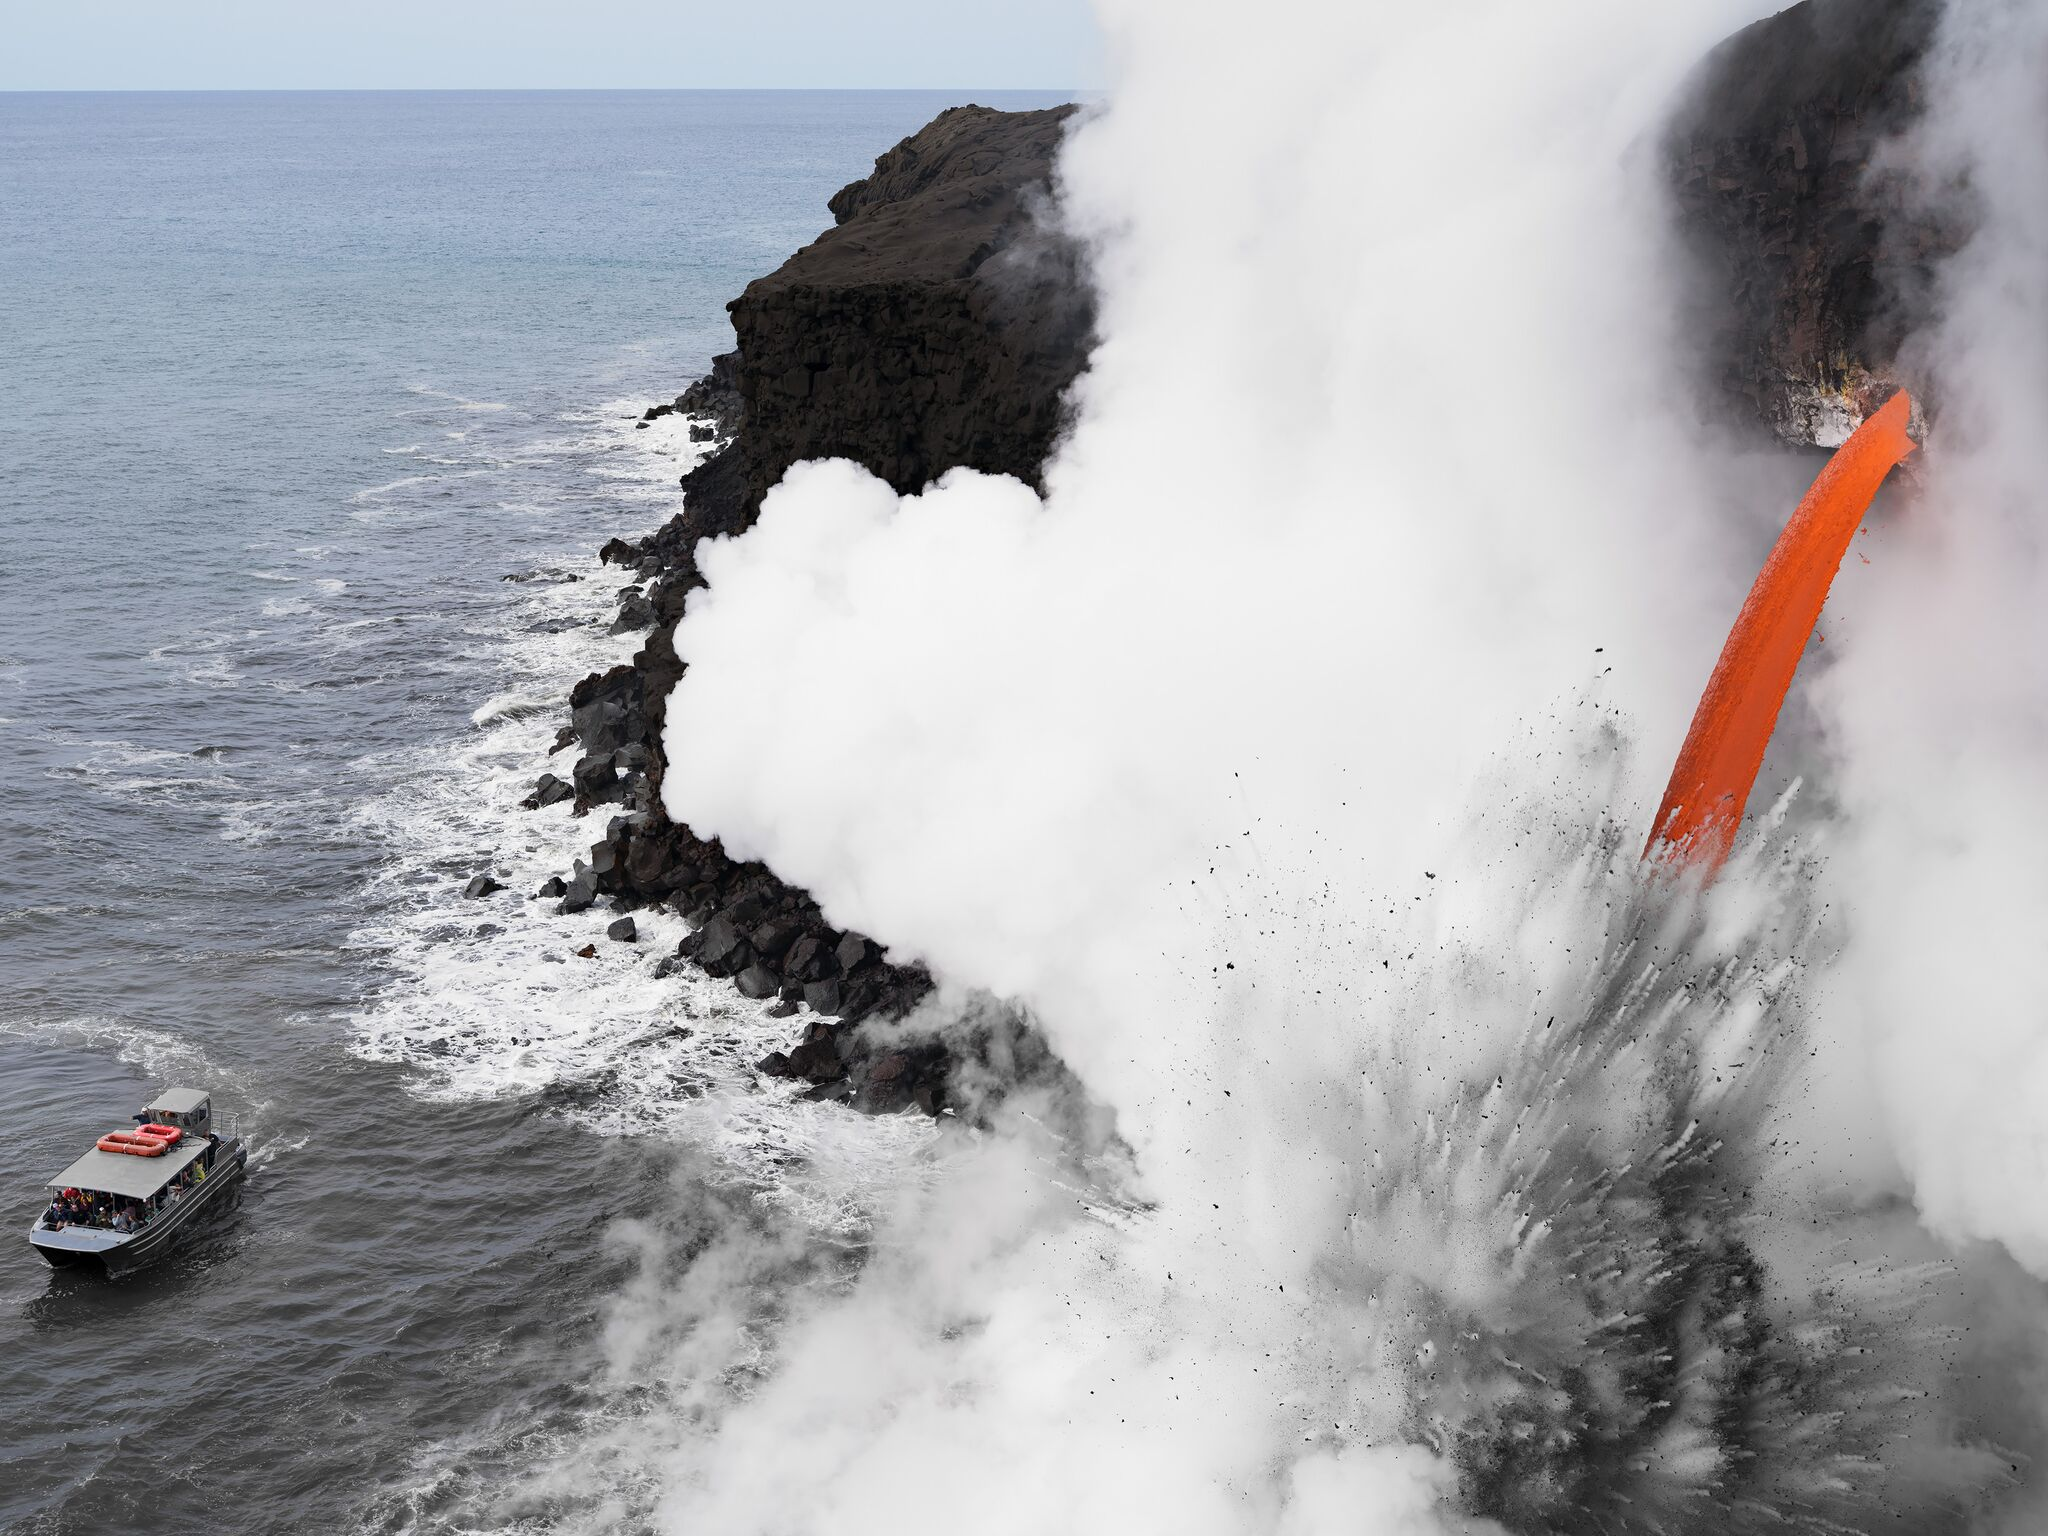 - Lava Boat Tour, Hawai'i © Lucas Foglia. Courtesy of Michael Hoppen Gallery